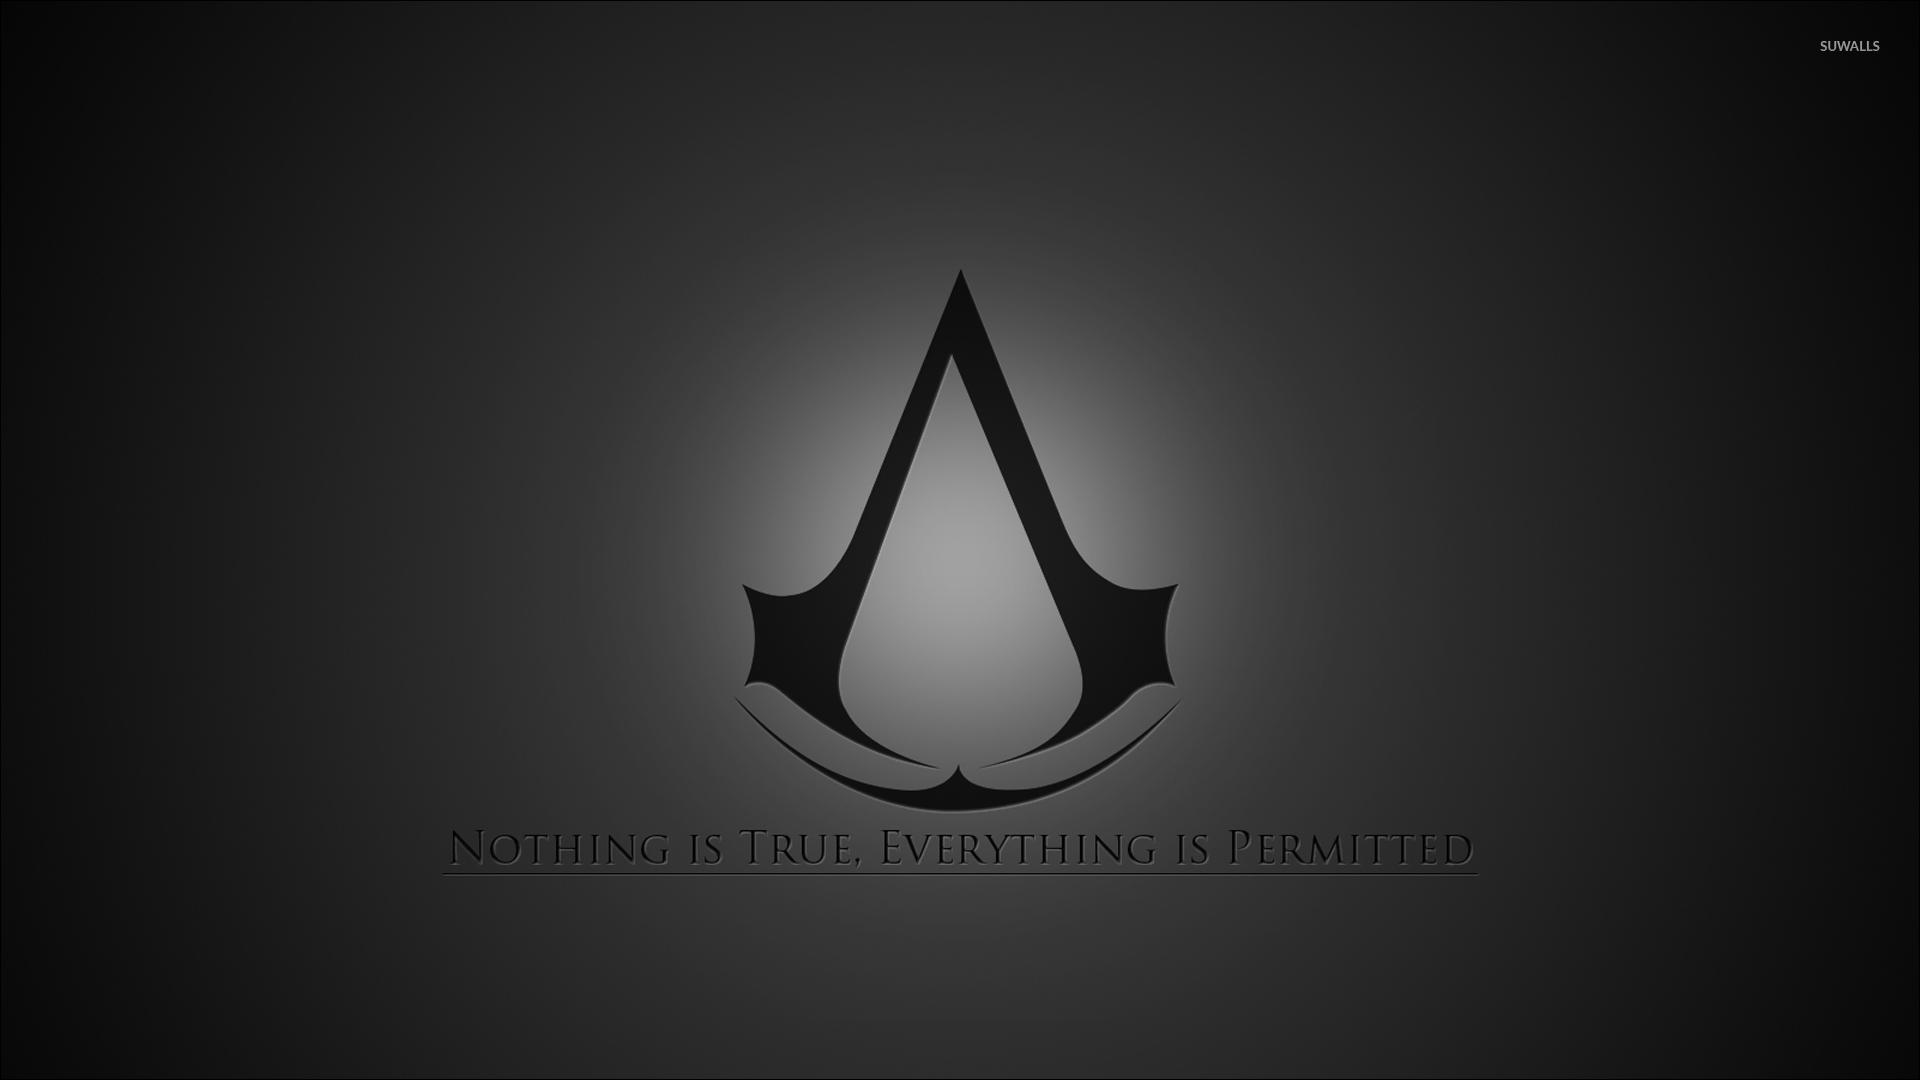 Download Assassin Creed Logo Wallpaper Hd Backgrounds